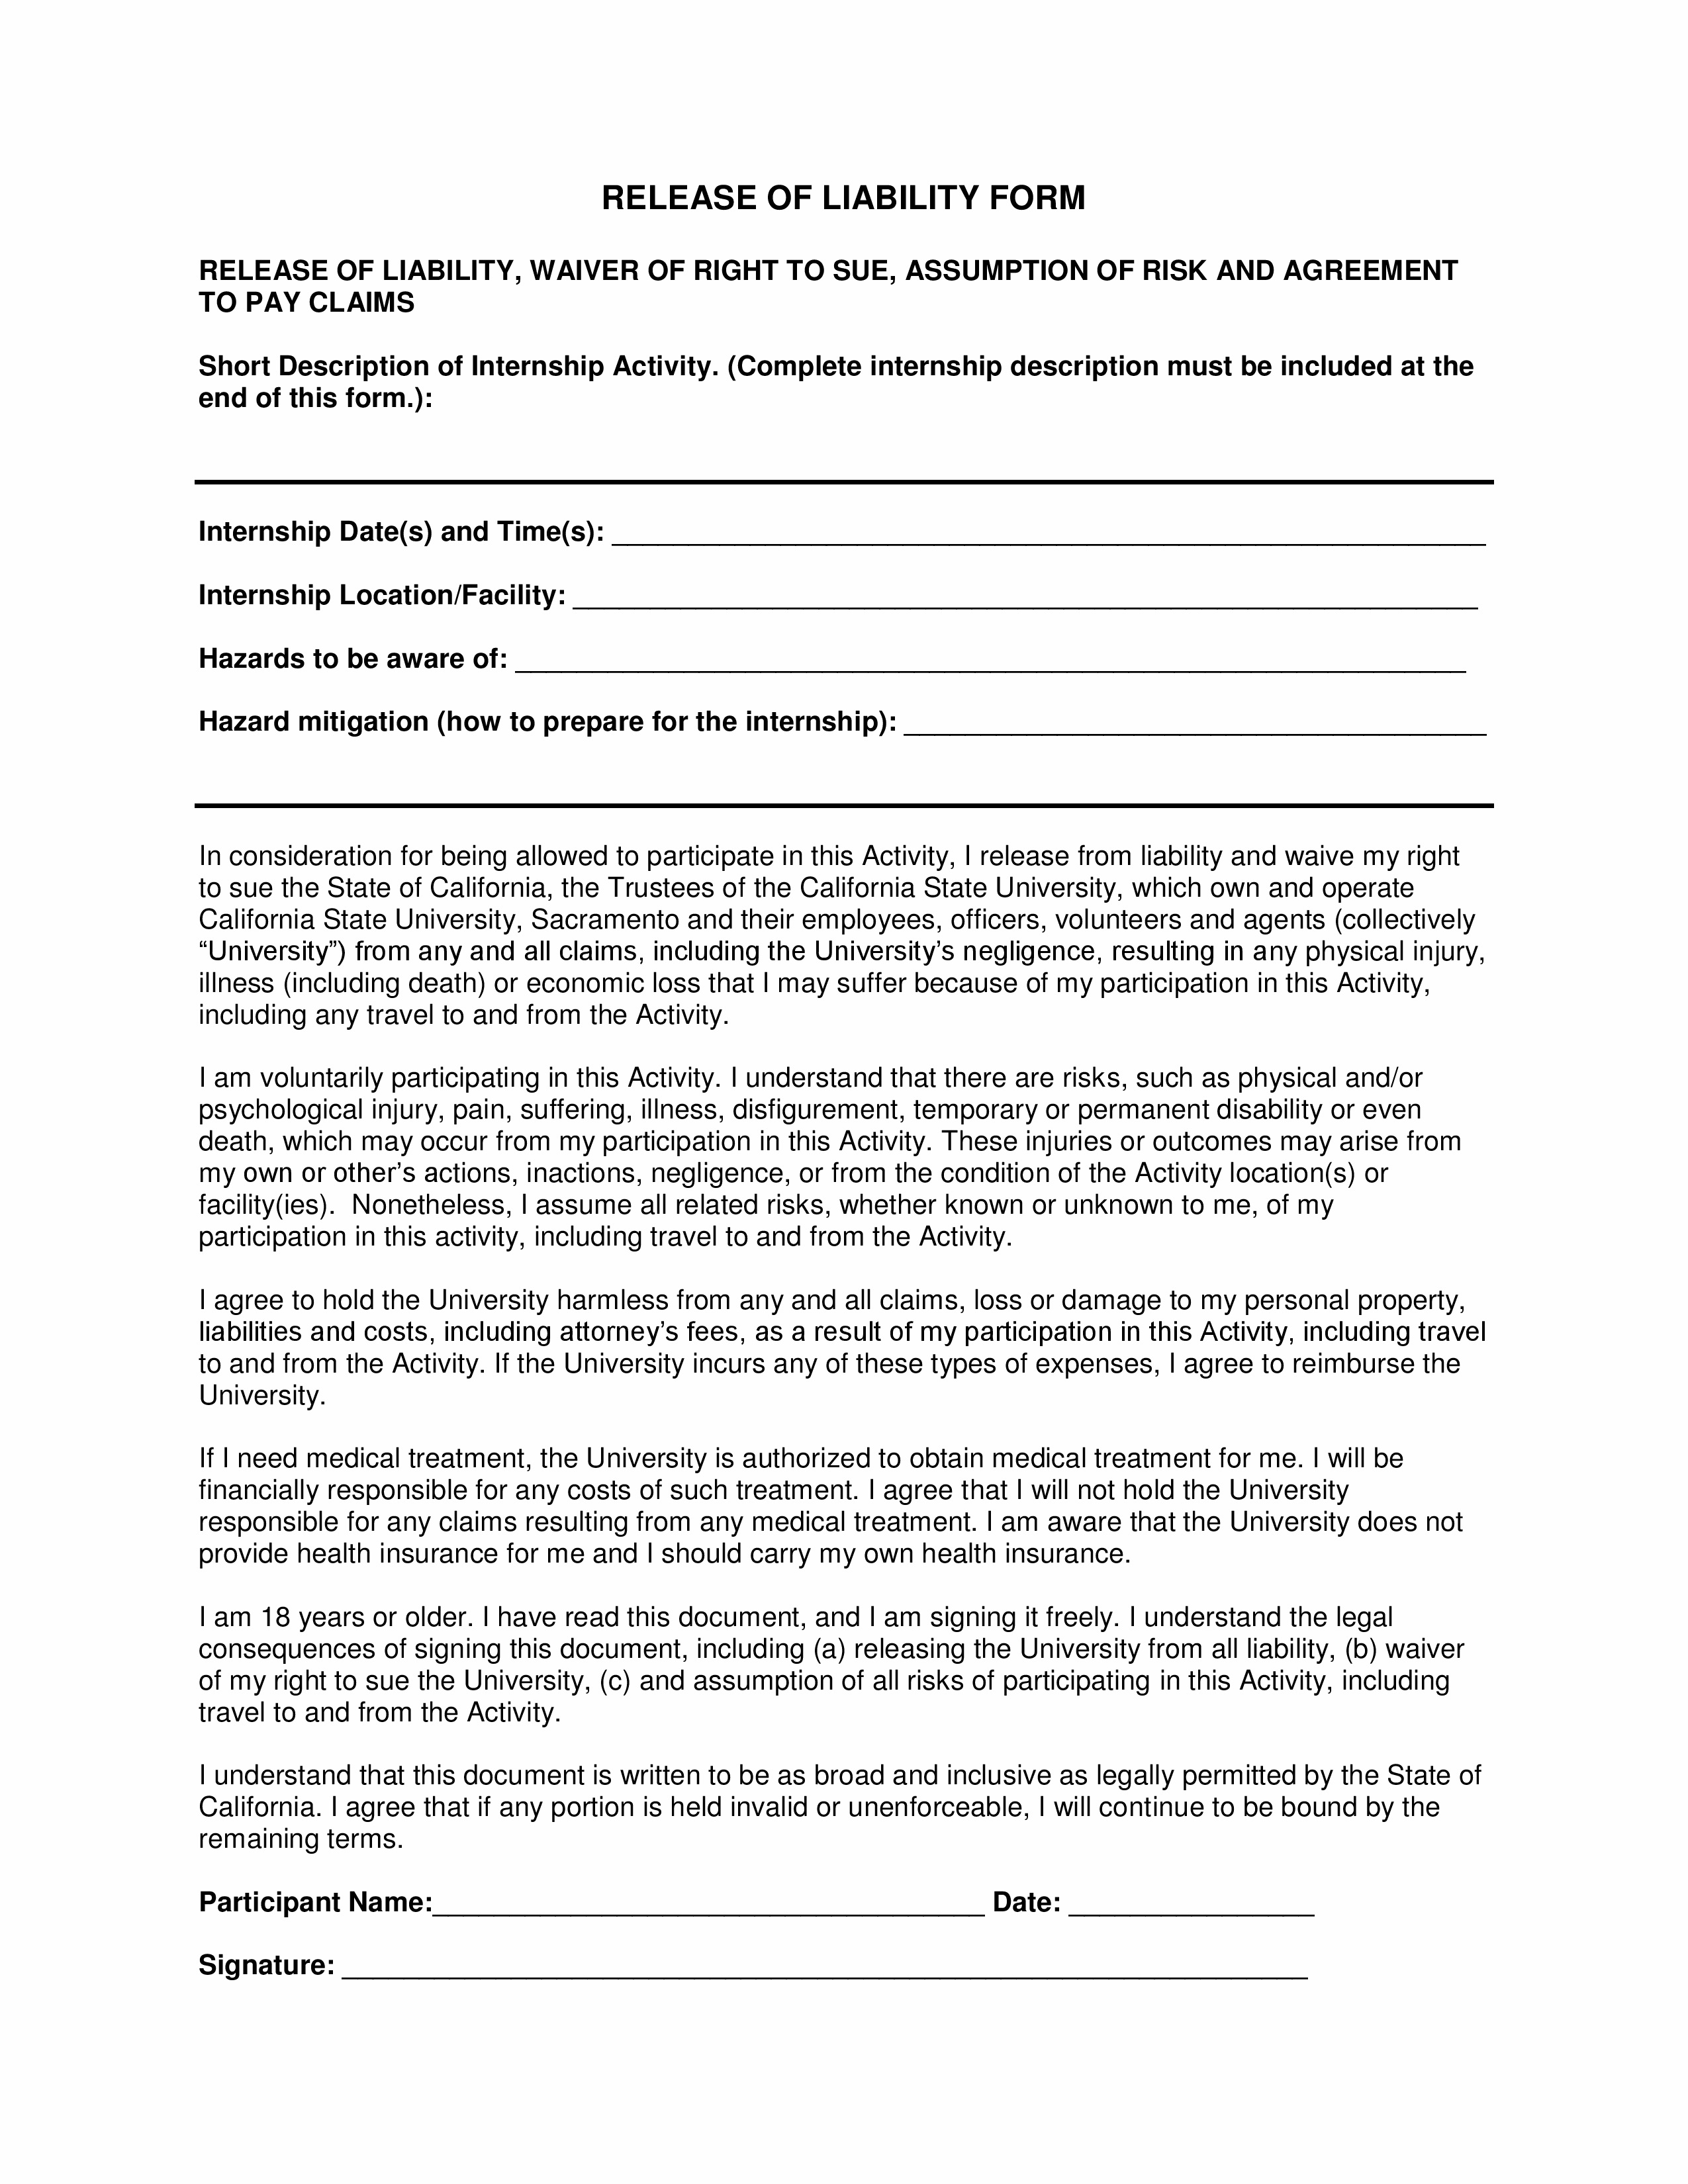 Hold Harmless Agreement Template Word